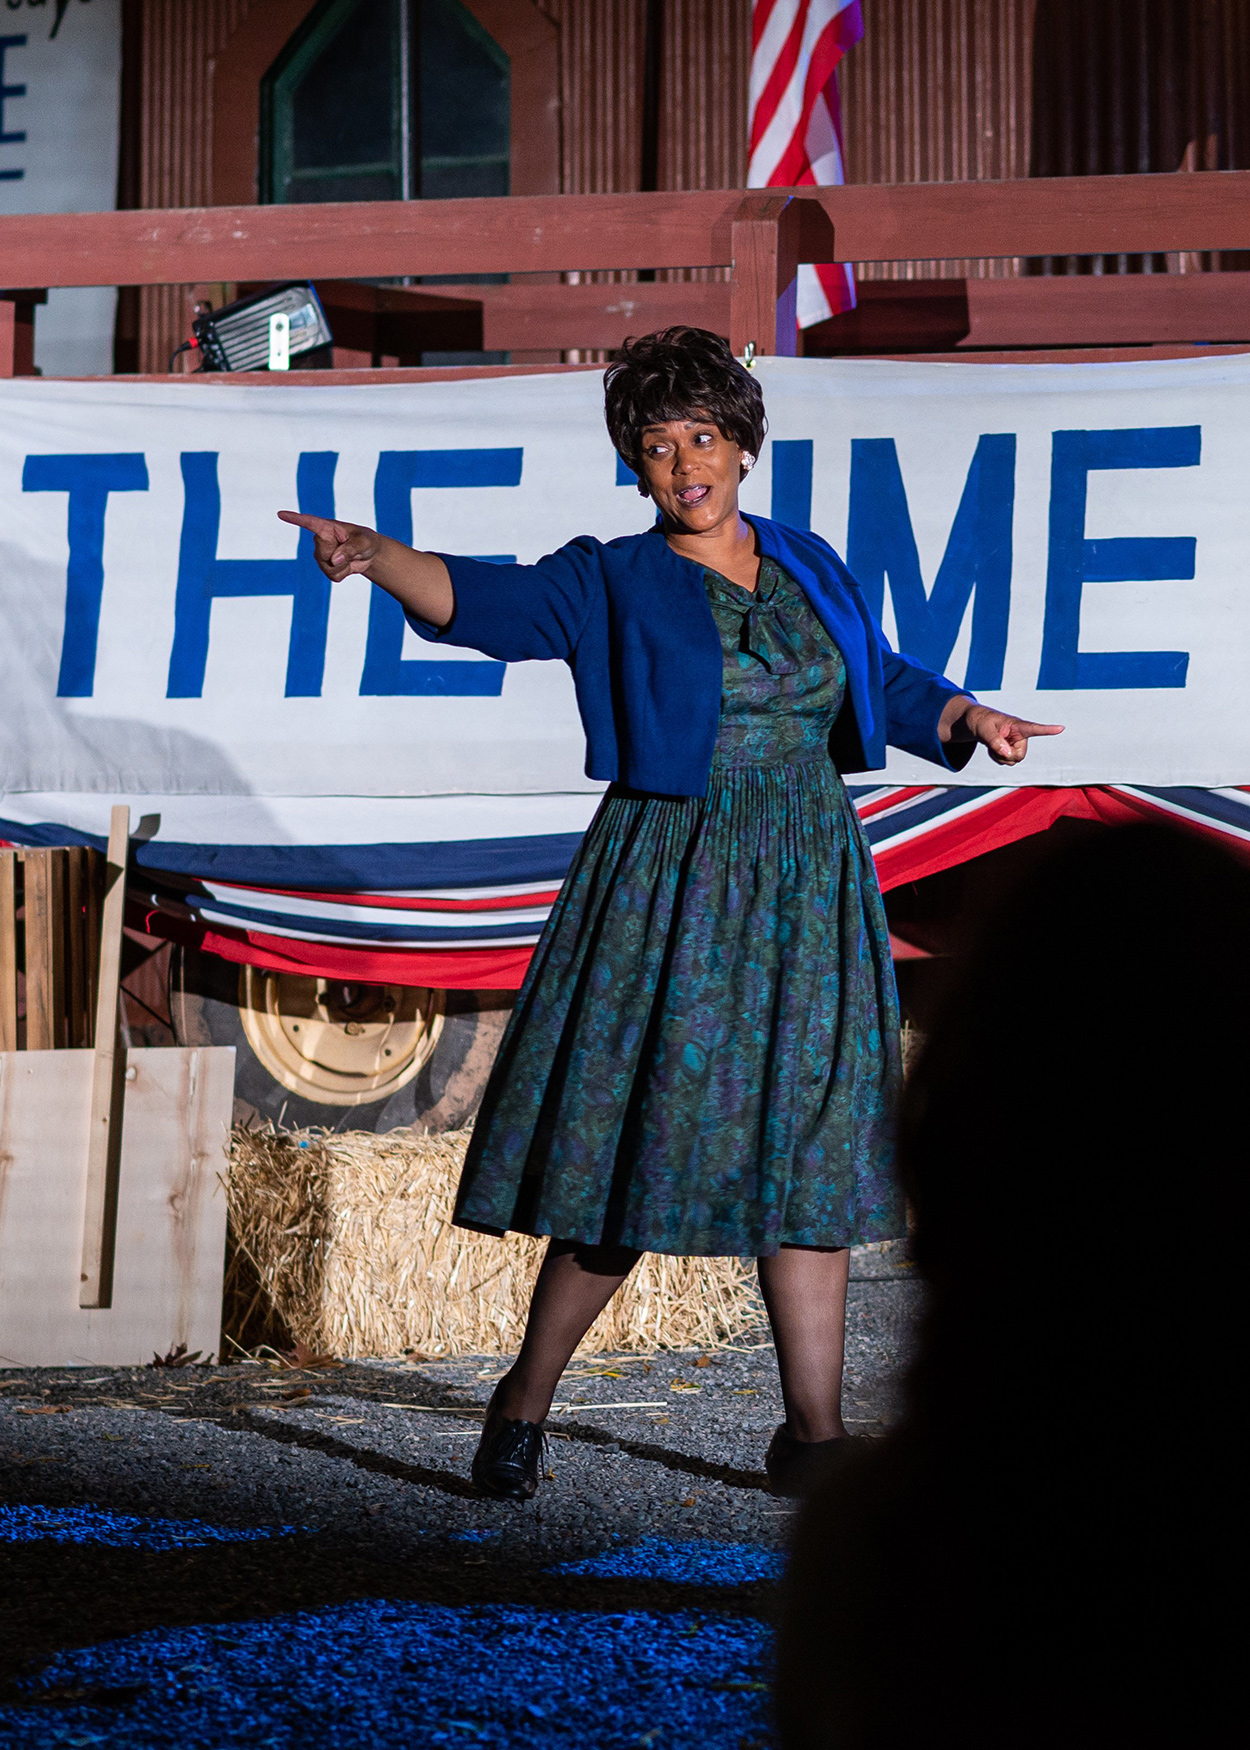 Production photo from Fannie Lou Hamer, Speak On It! (2020). Actress Rema Webb portrays civil rights activistFannie Lou Hamer. Behind her is a sign that reads The Time is Now.